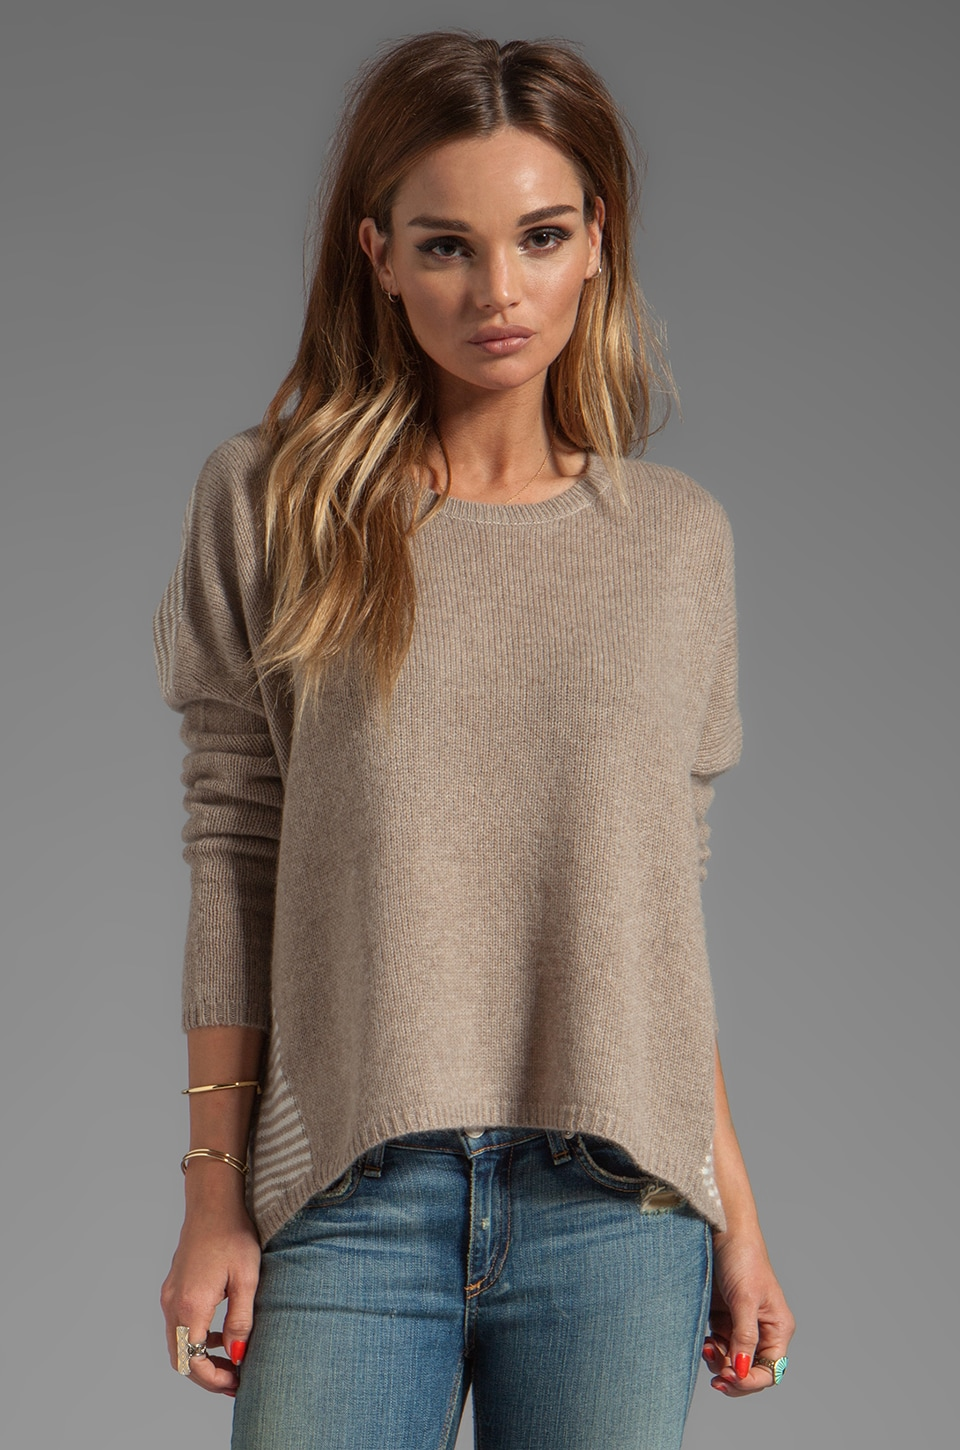 360 Sweater Corrine Cashmere Pullover in Heather Camel/Chalk